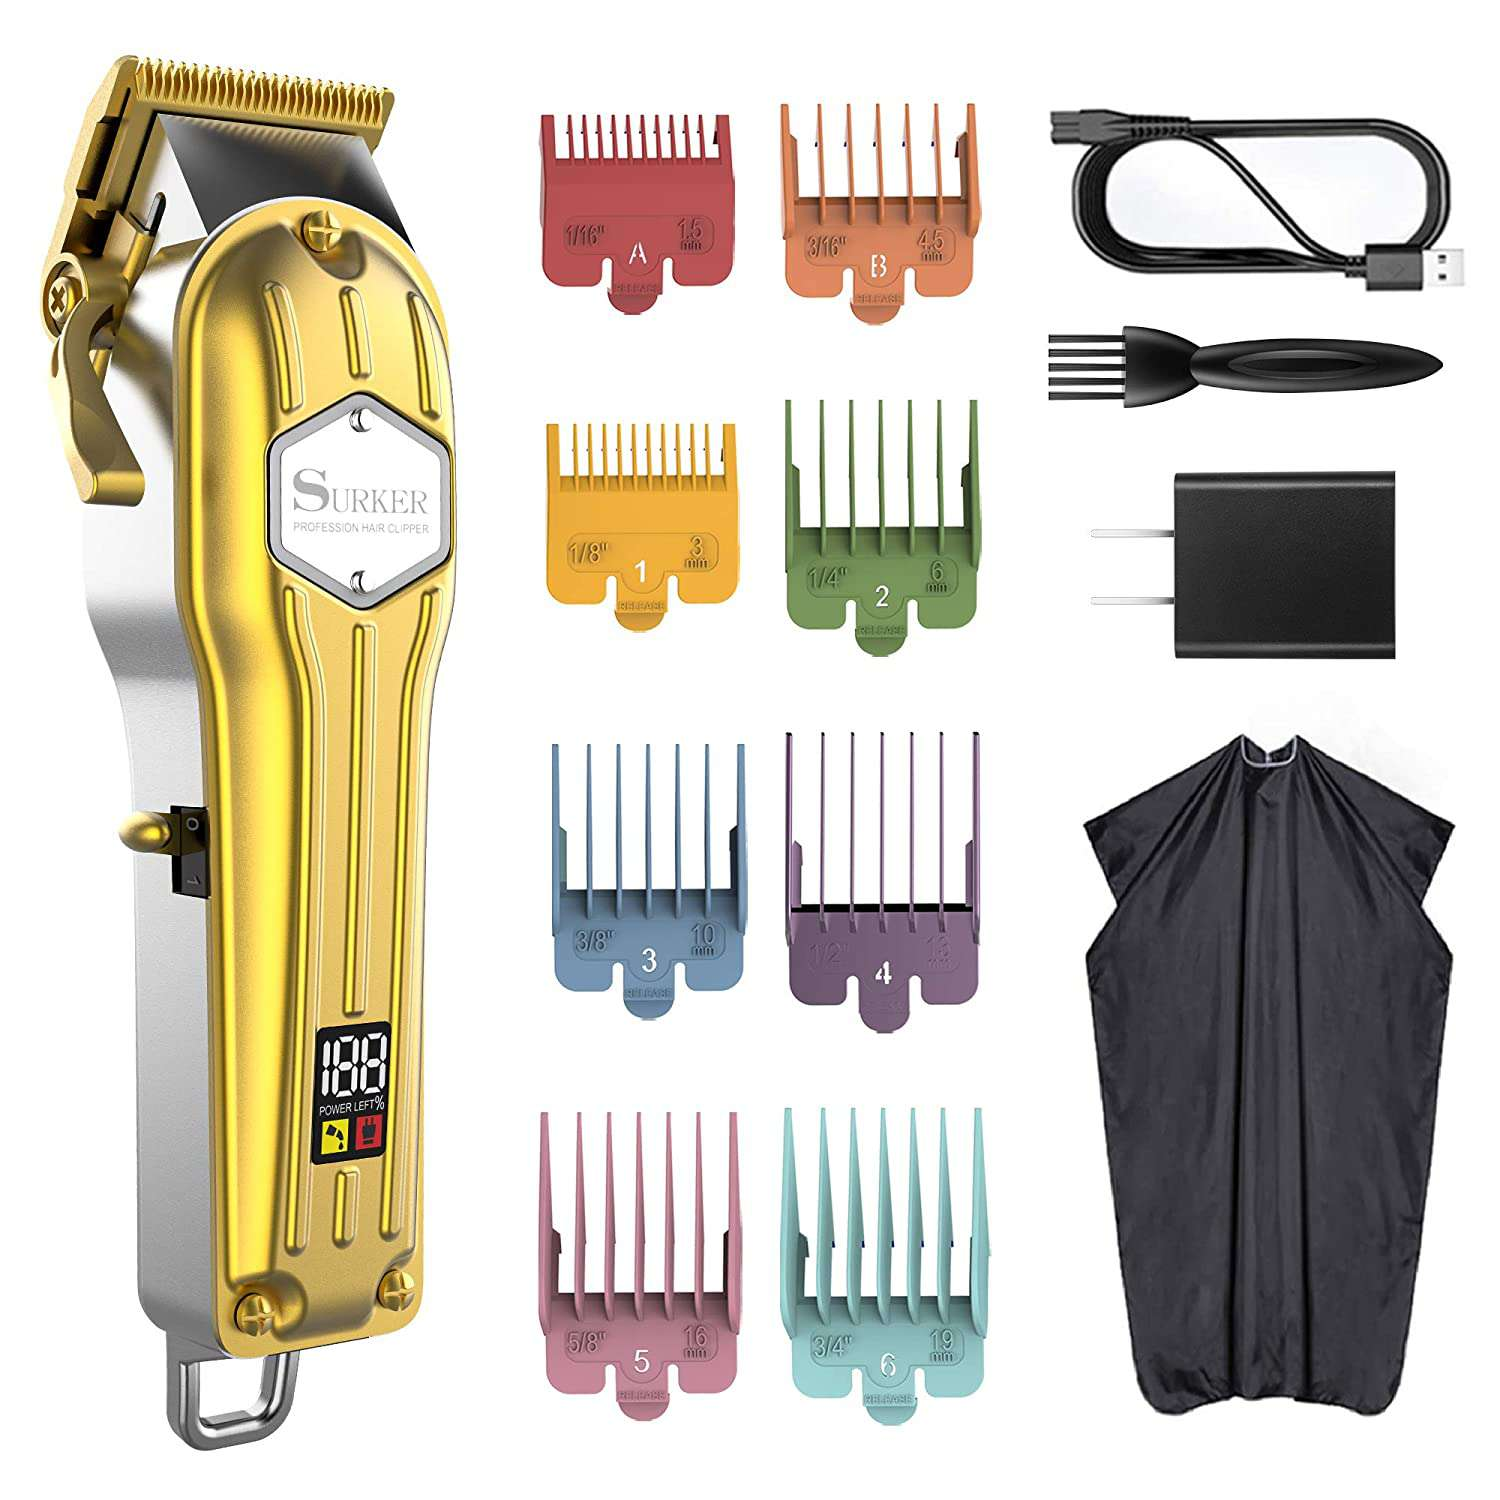 Surker Hair Clippers